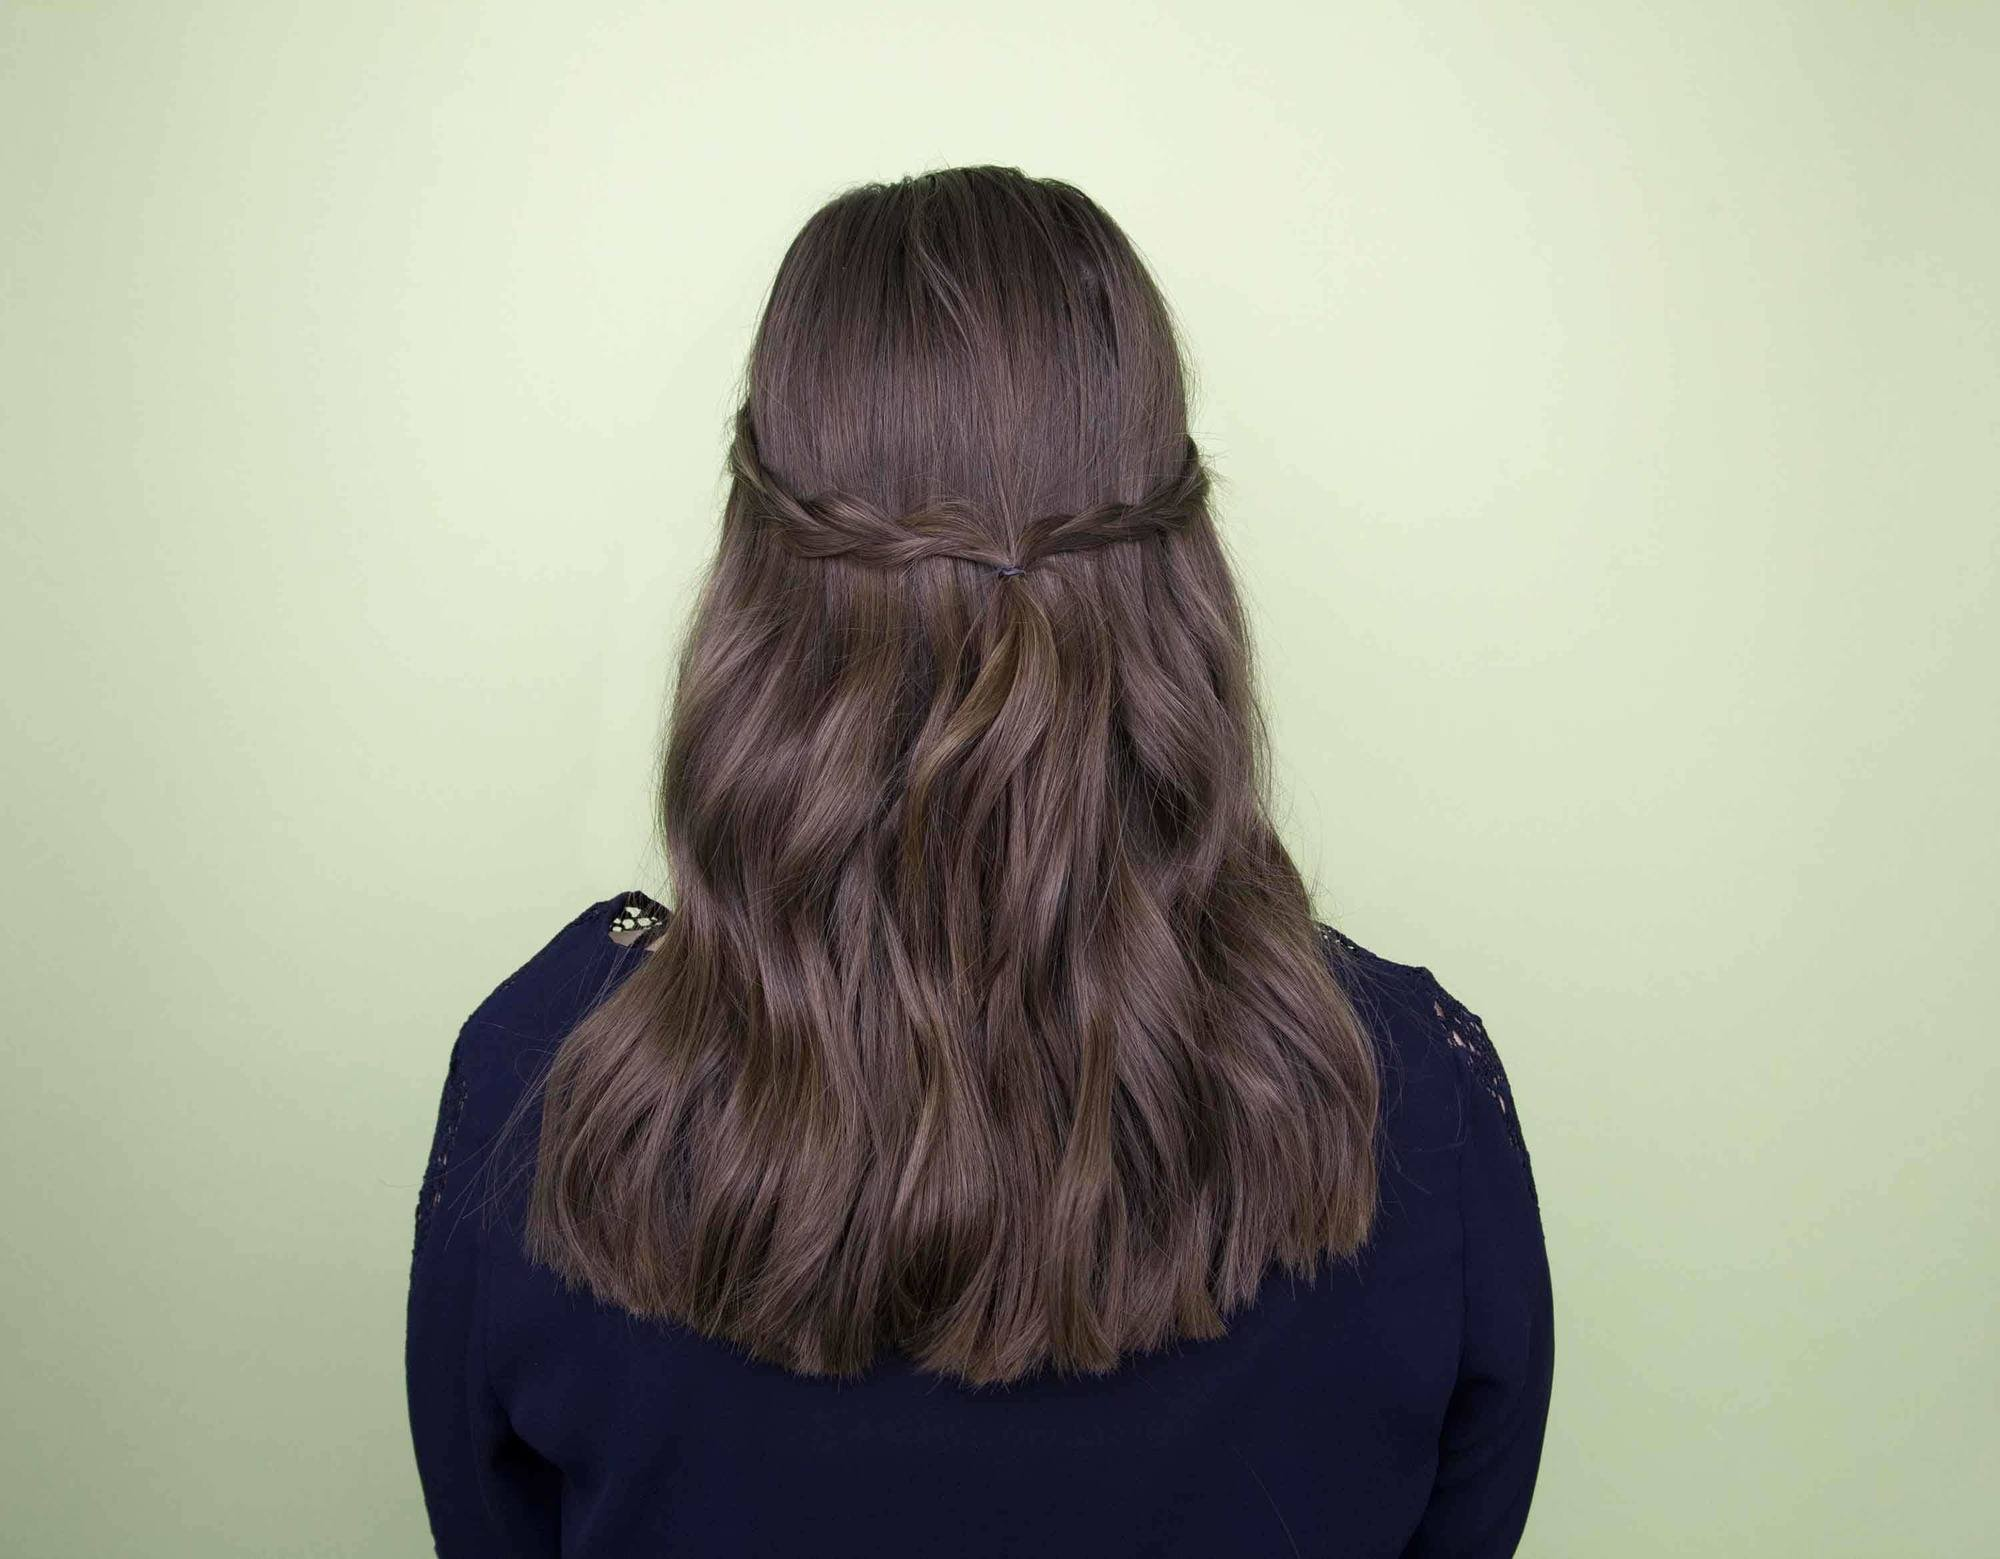 Festival hair: back view of brunette woman with medium length hair styled with single braids pinned at the back in studio setting